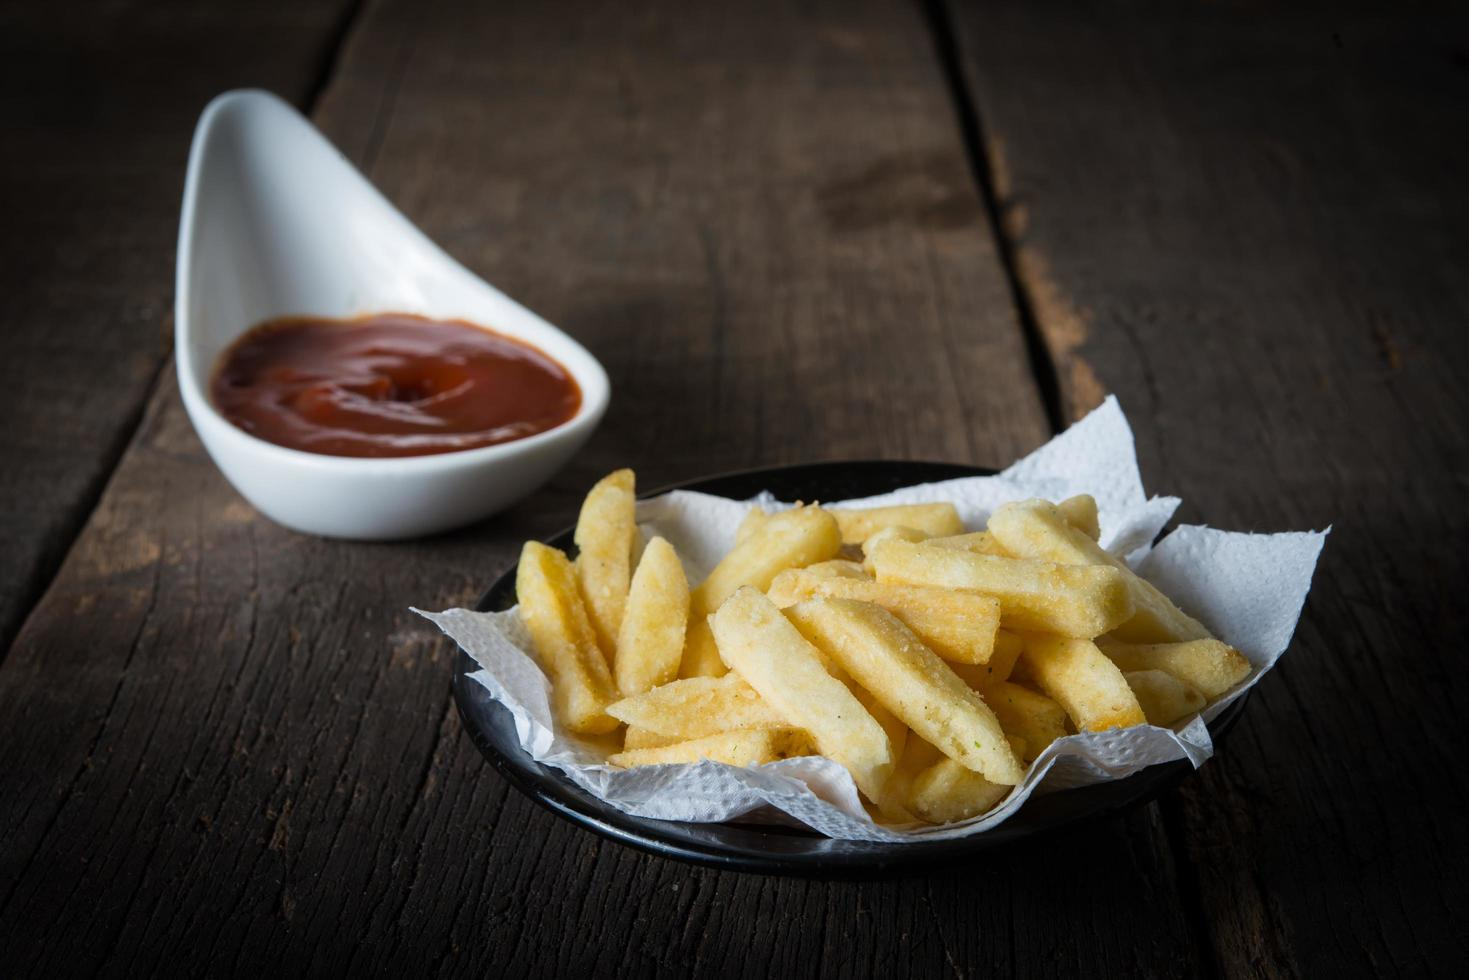 frites traditionnelles au ketchup photo